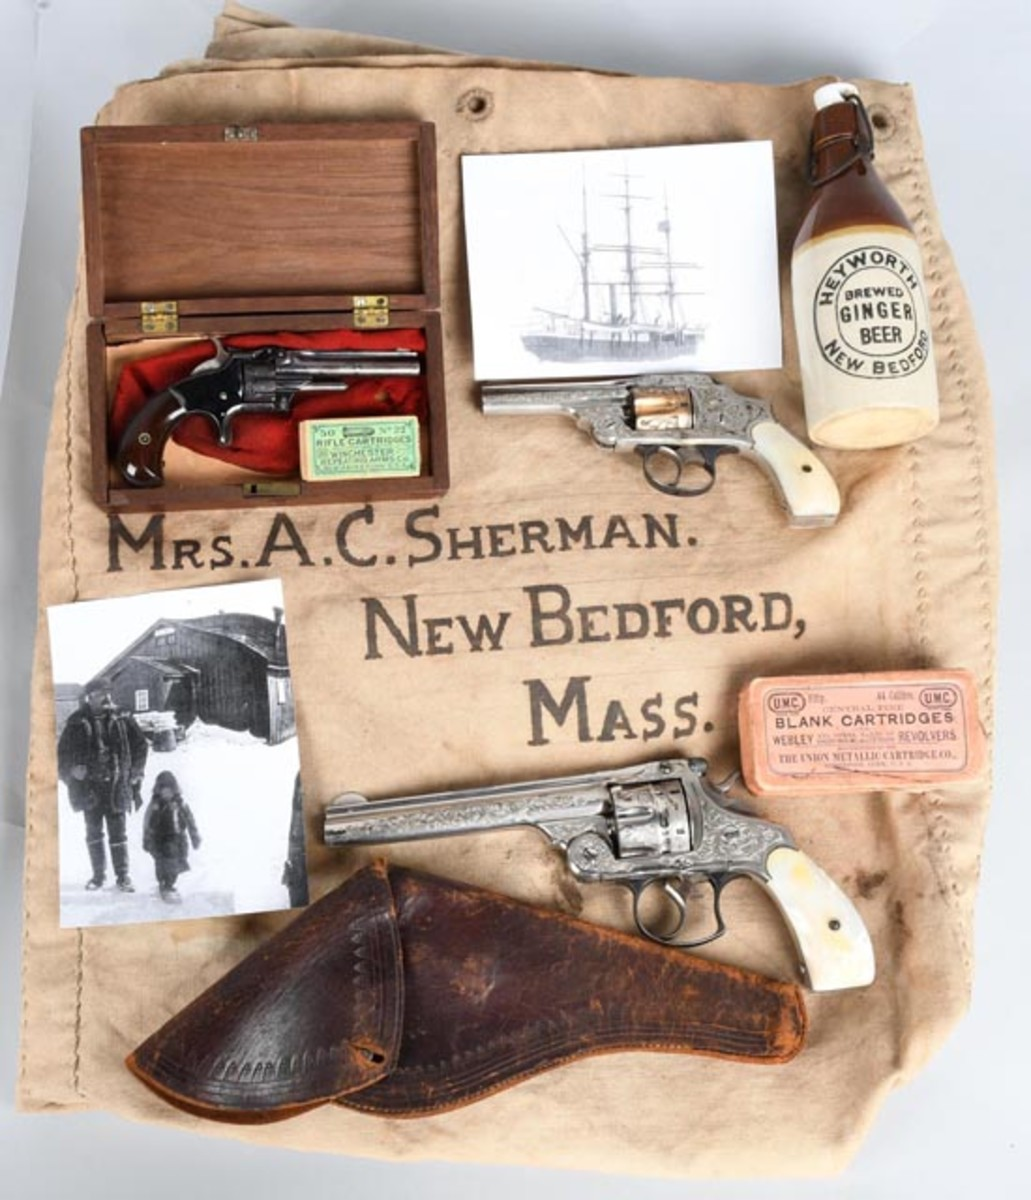 https://www.liveauctioneers.com/item/58862507_whaling-captain-s-smith-and-wesson-pistol-groupingImportant collection of 19th-century Smith & Wesson revolvers and other items belonging to whaling ship captain Albert Sherman (1849-1914) of New Bedford, Mass., family provenance.